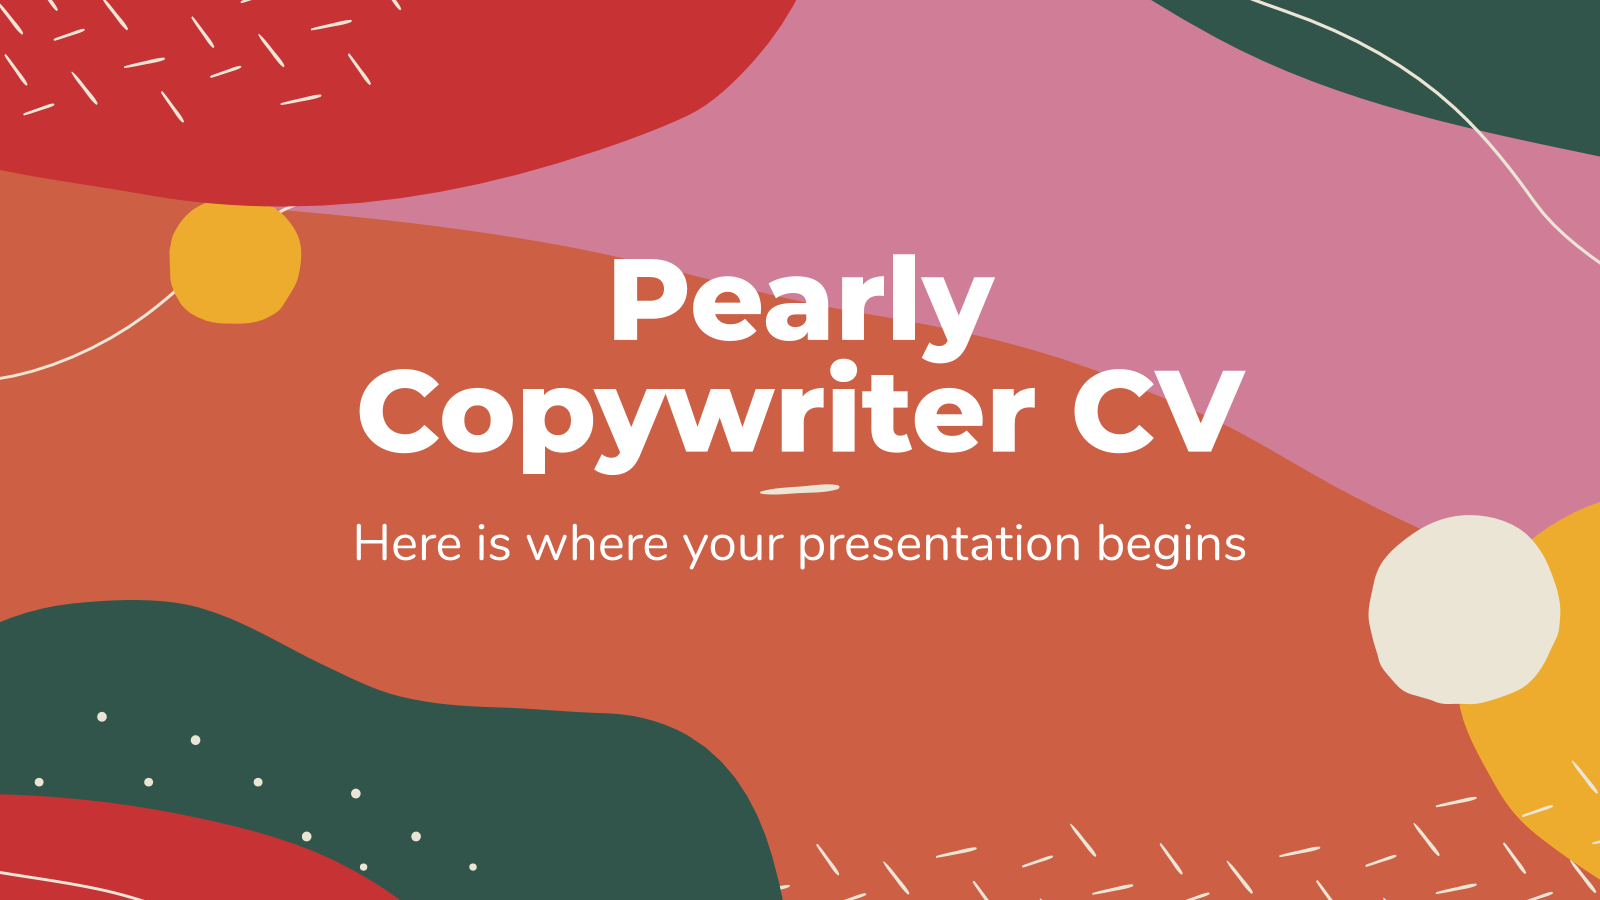 Pearly Copywriter CV presentation template